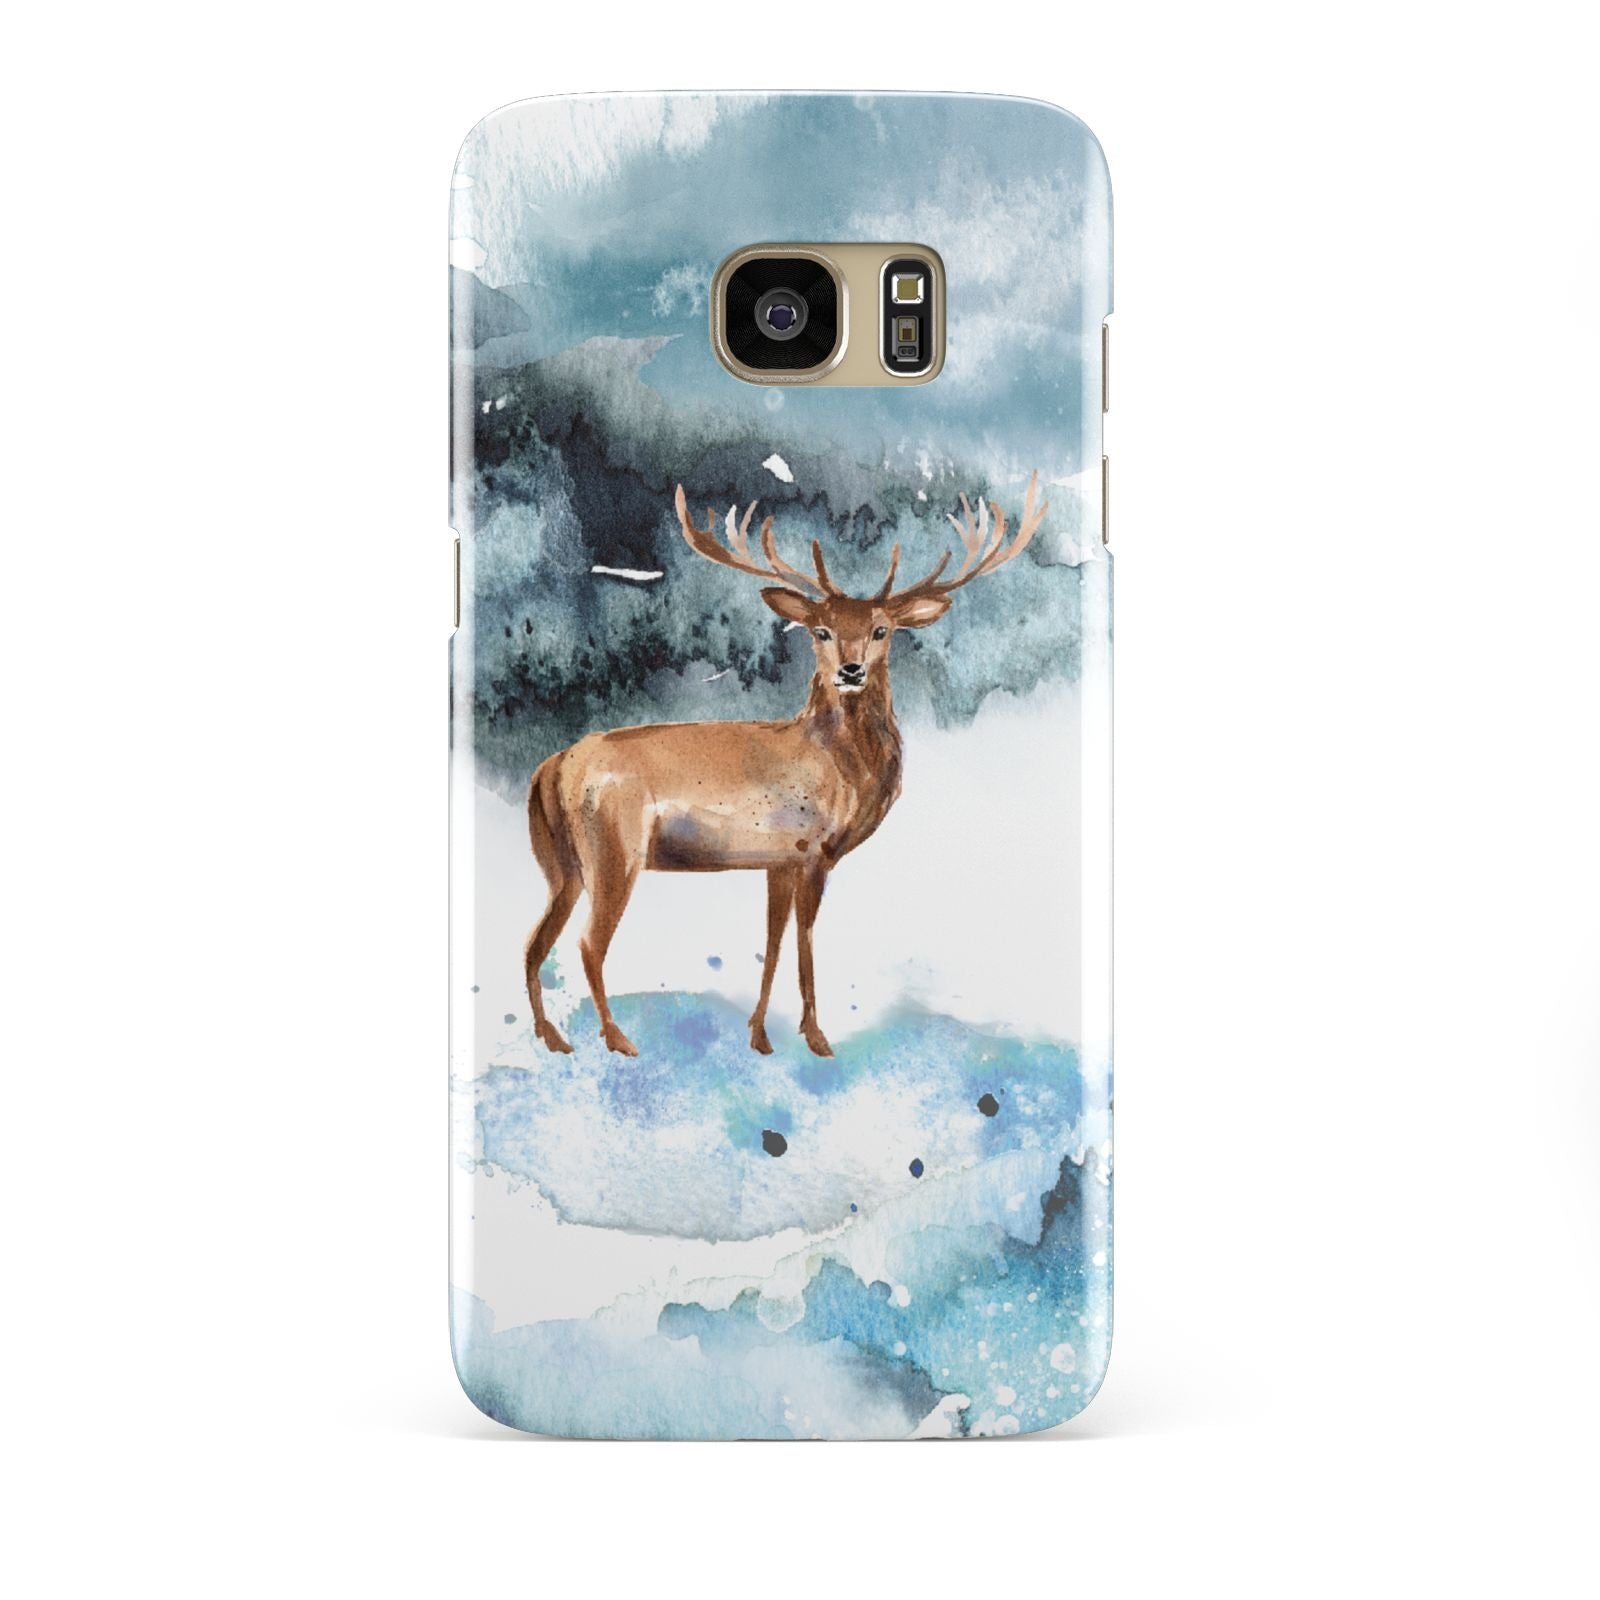 Christmas Winter Stag Samsung Galaxy S7 Edge Case